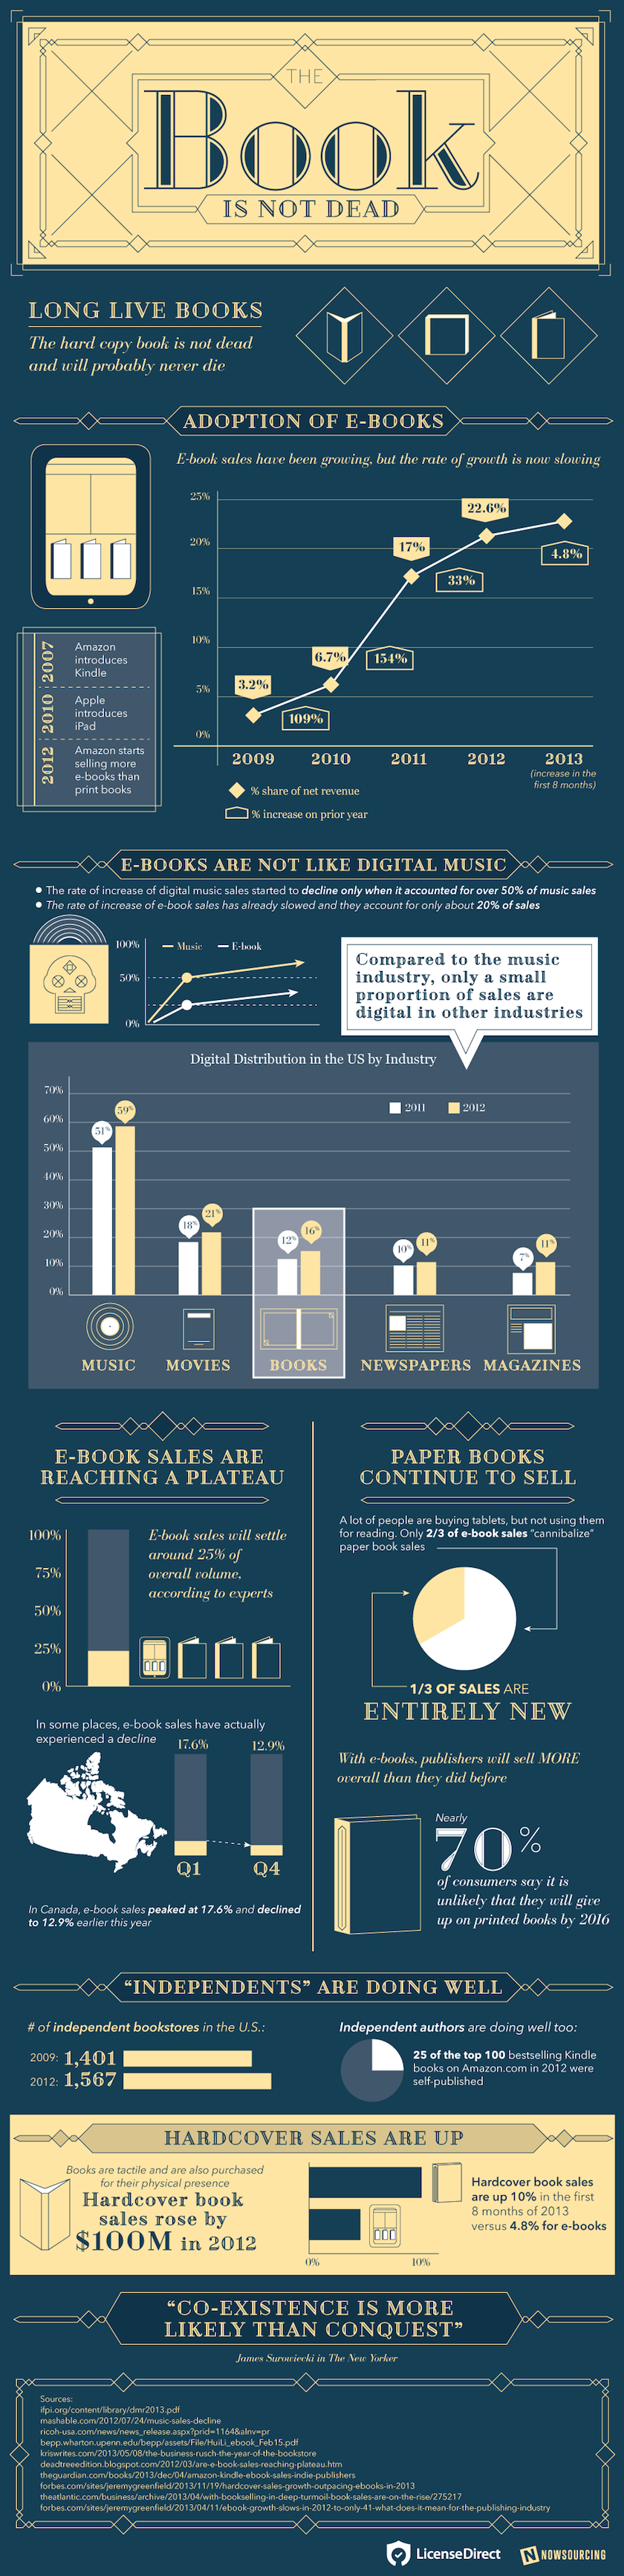 The-print-book-is-not-dead-infographic